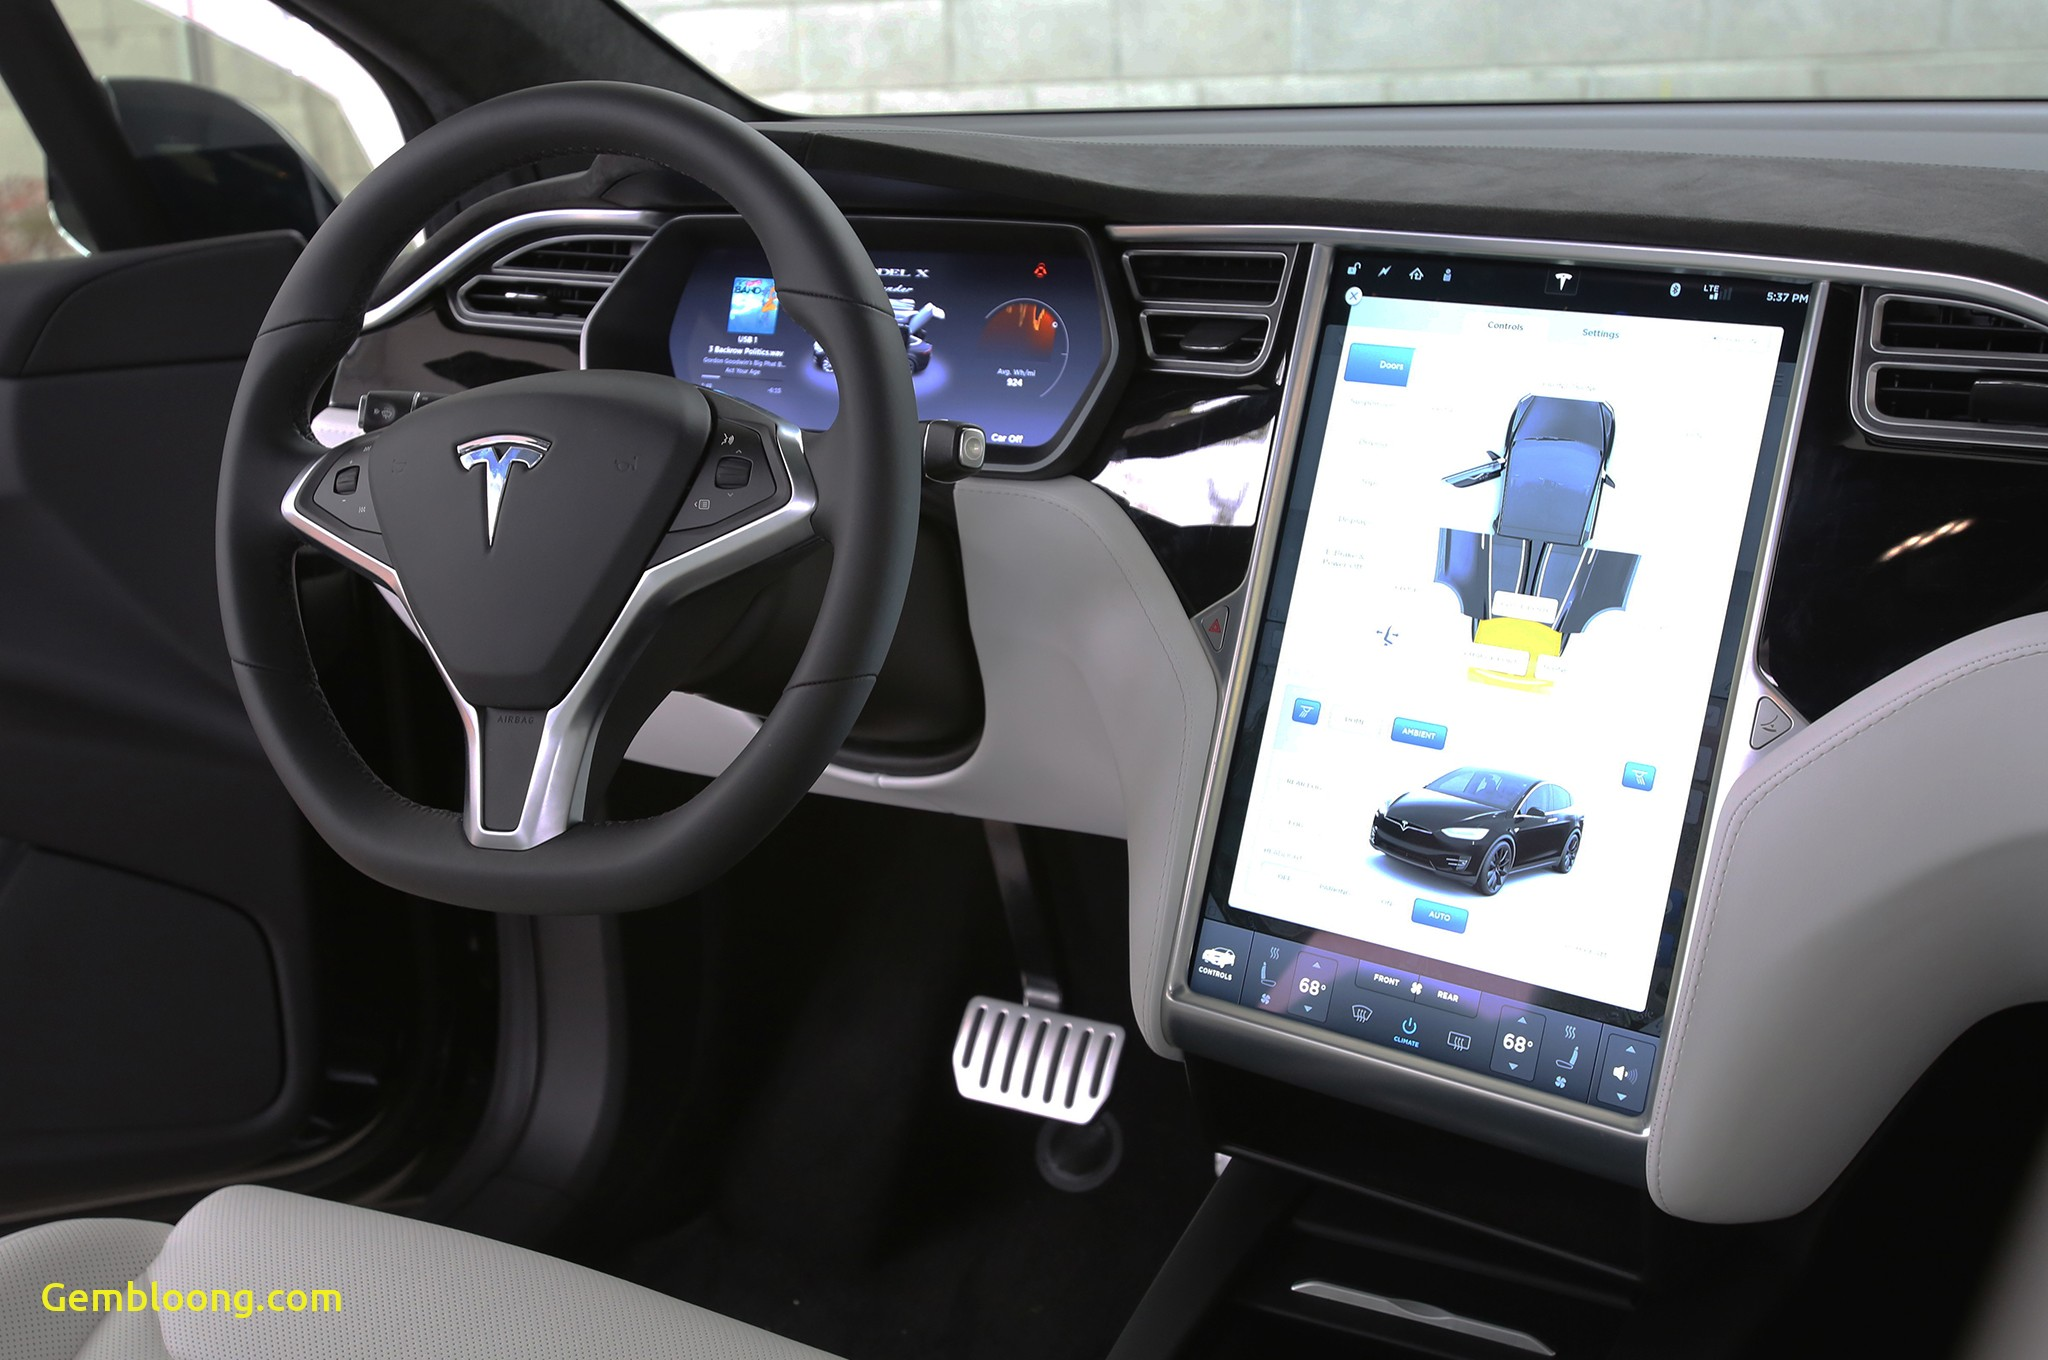 Tesla X Inspirational Tesla Delivers In Style Model X Gets A King S Wel E In